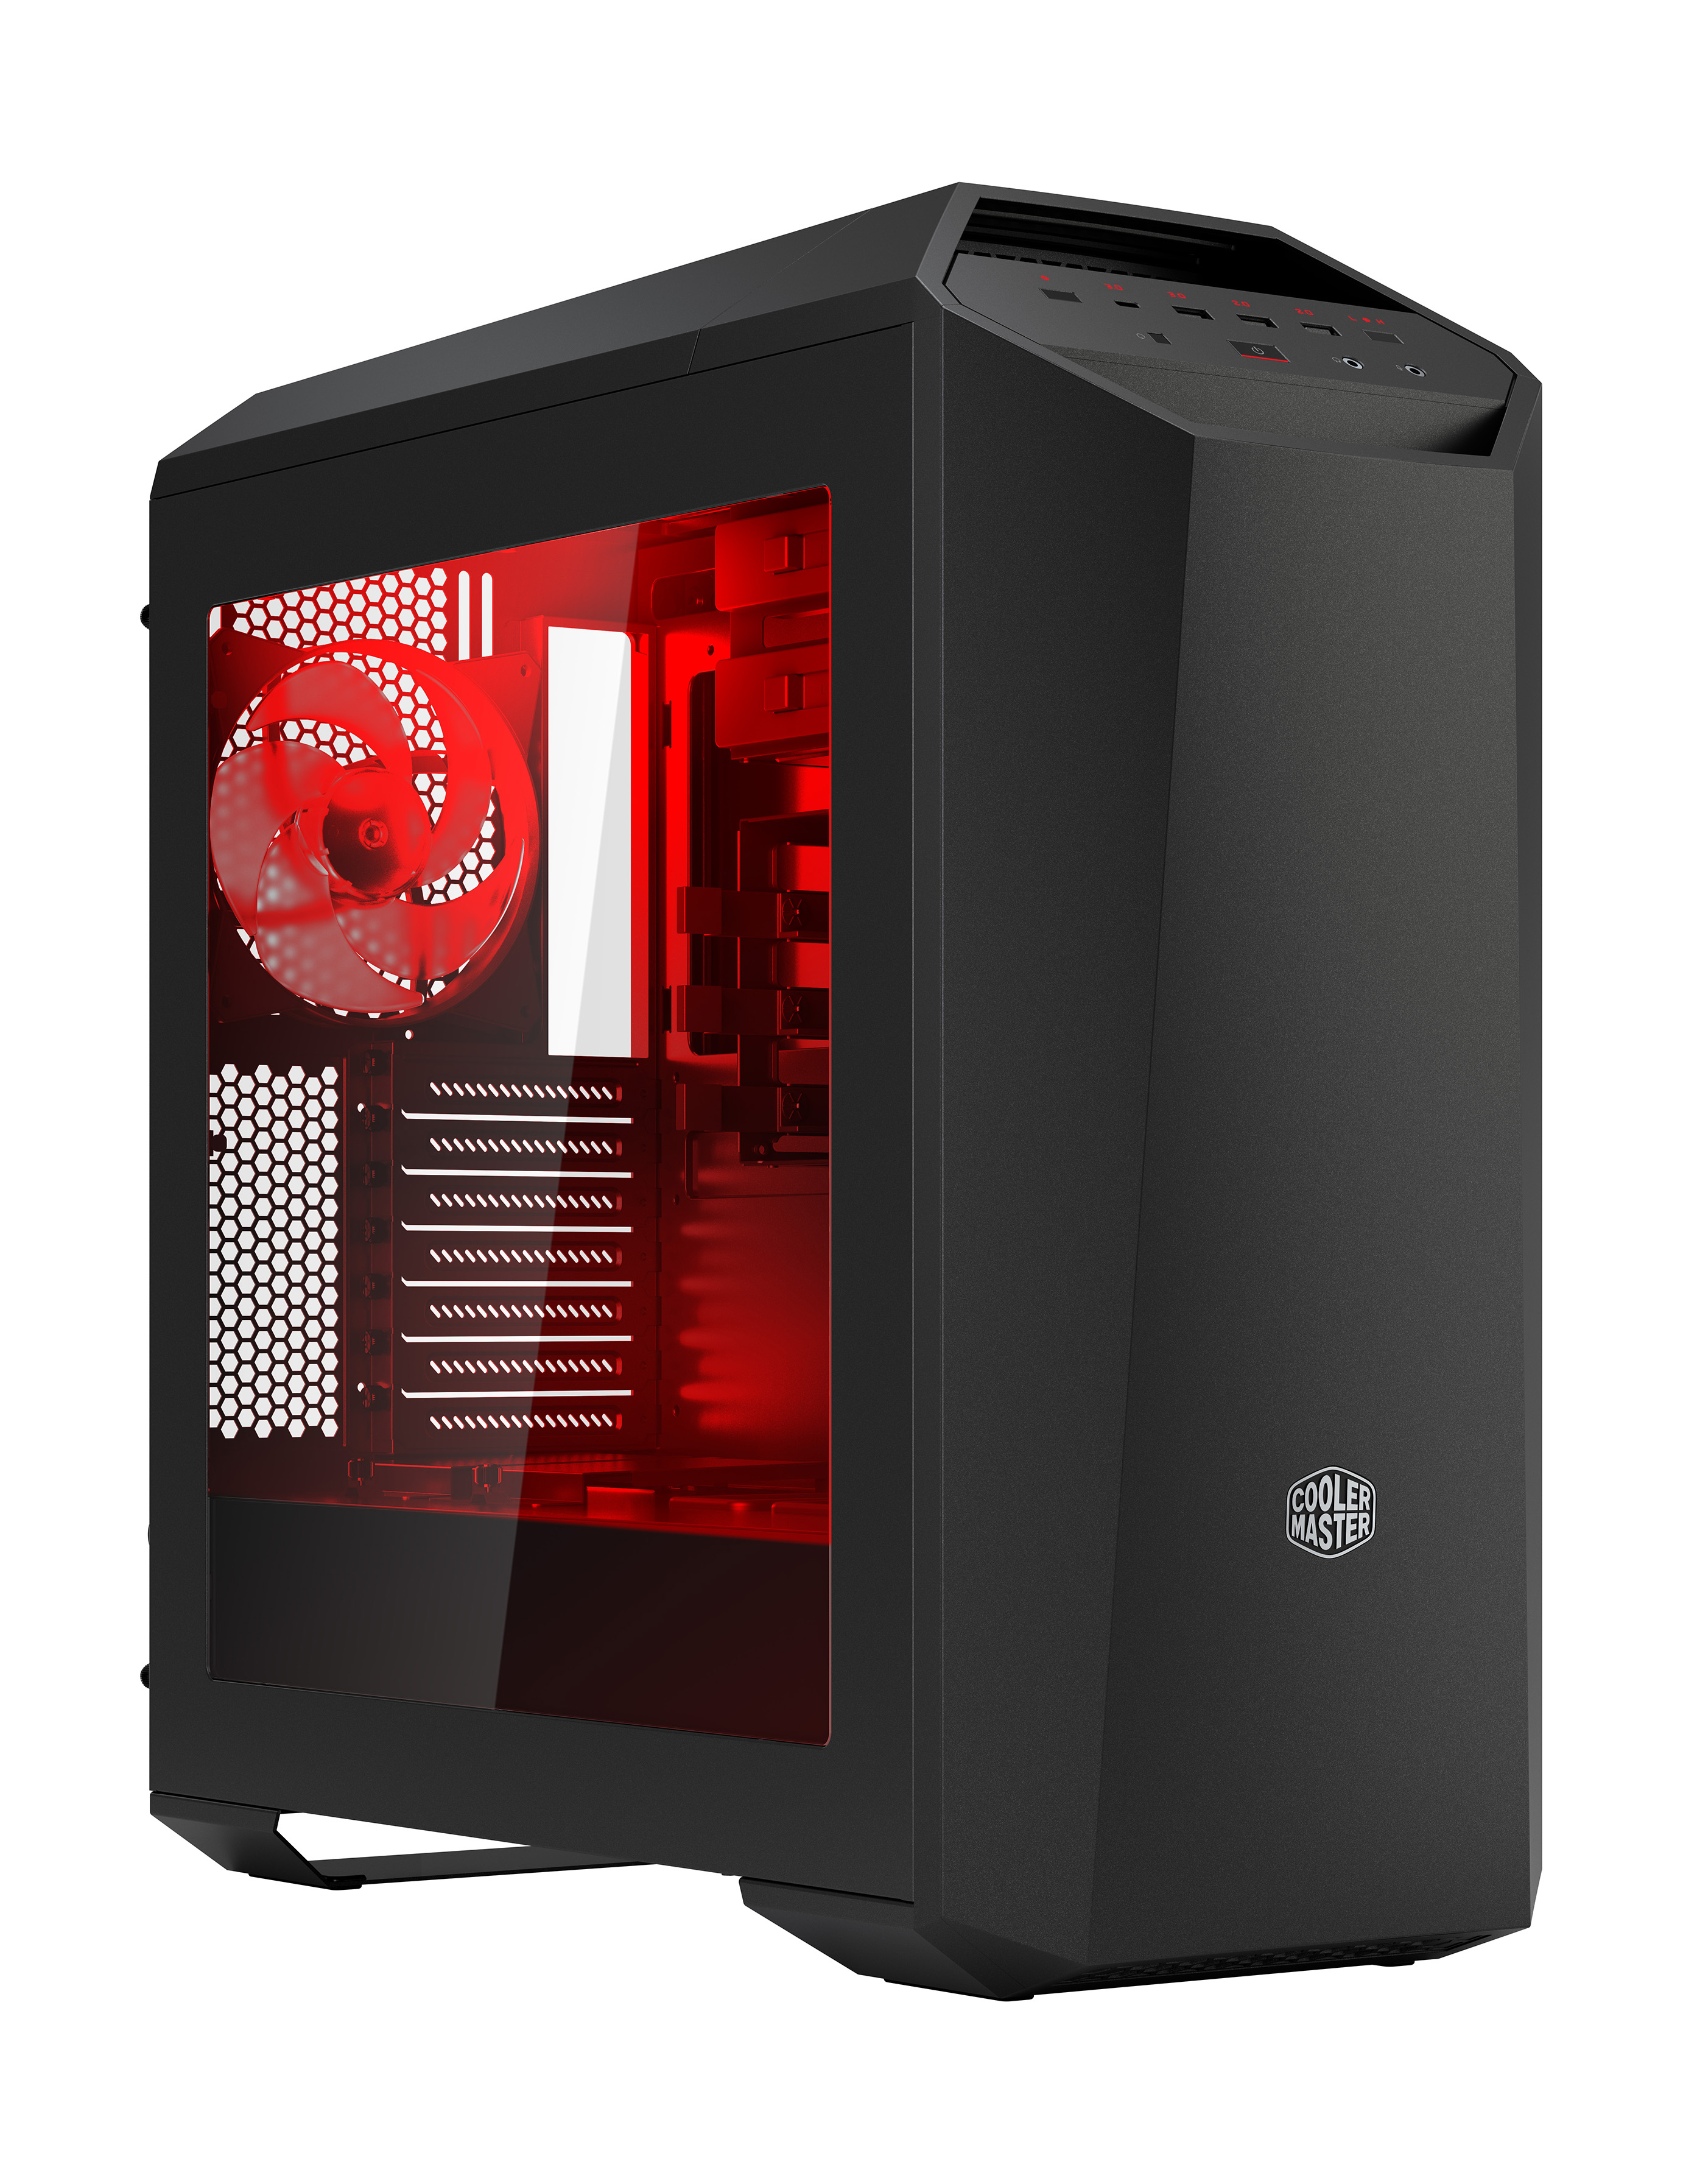 Photo of Cooler Master boasts innovation and DIY products at the CES exhibition